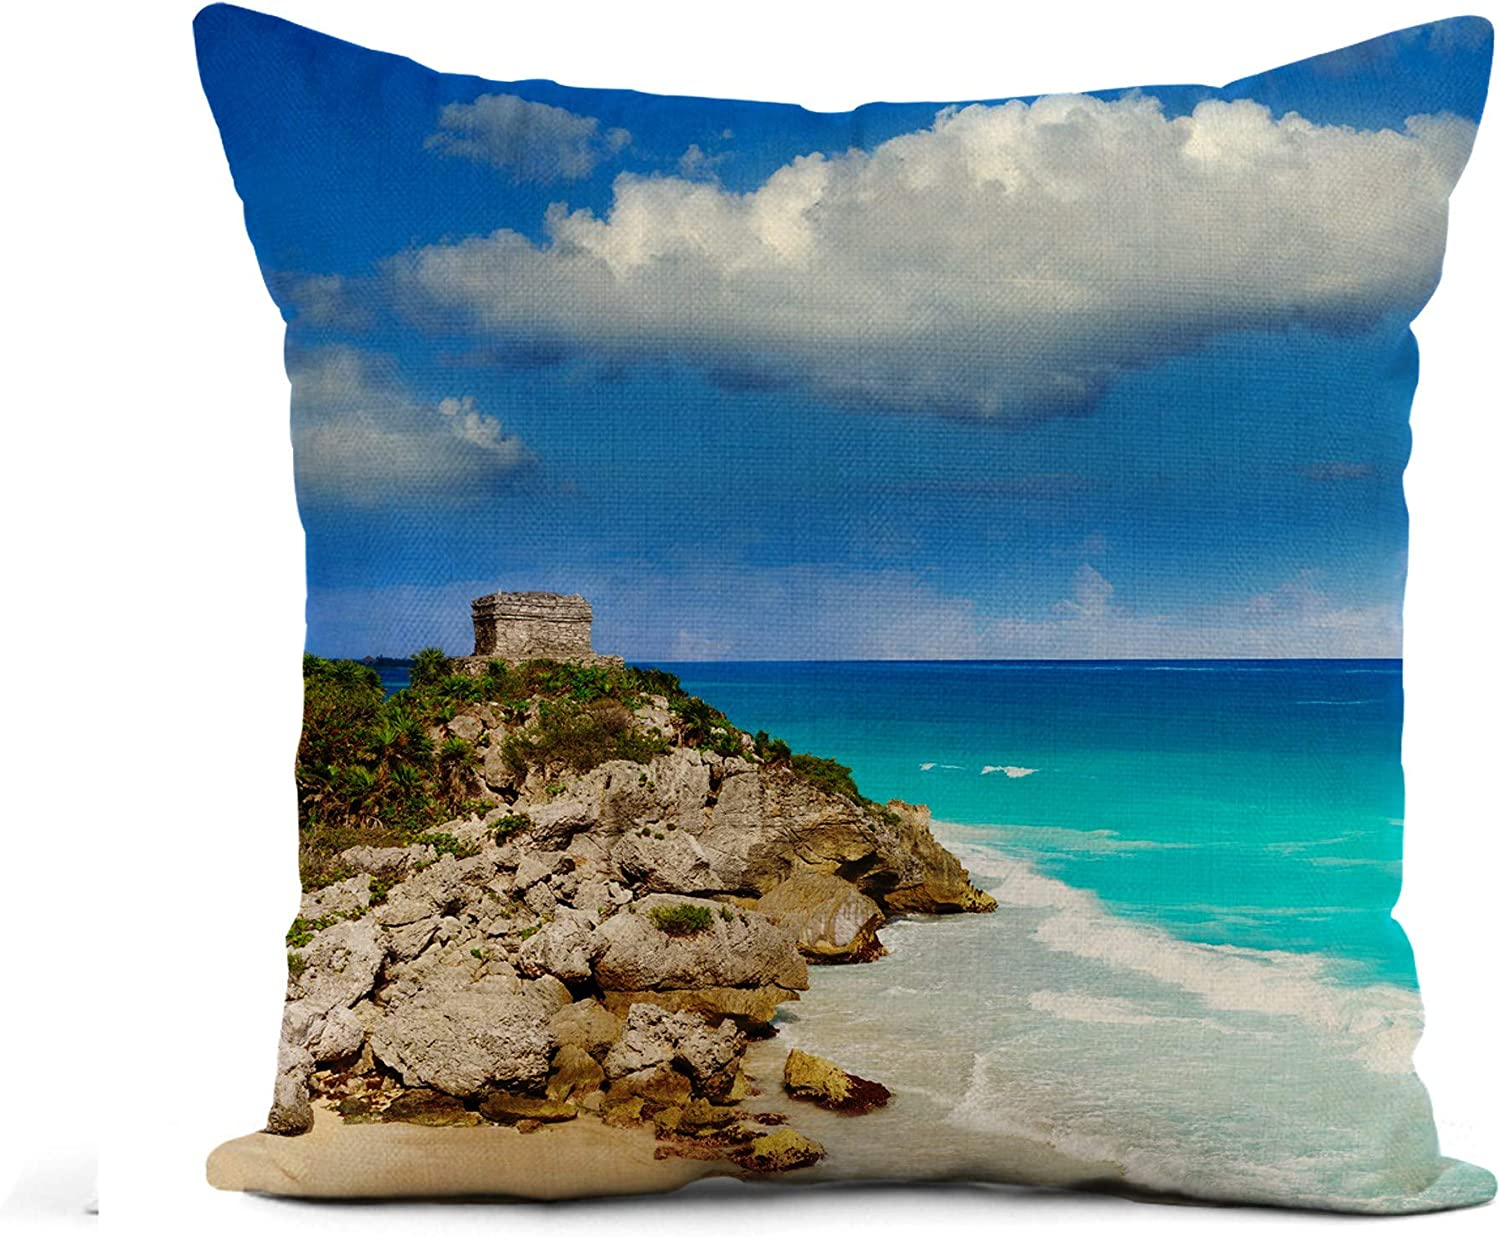 Awowee Flax Throw Pillow Cover Tulum Mayan City Ruins in Riviera Maya at The 16x16 Inches Pillowcase Home Decor Square Cotton Linen Pillow Case Cushion Cover